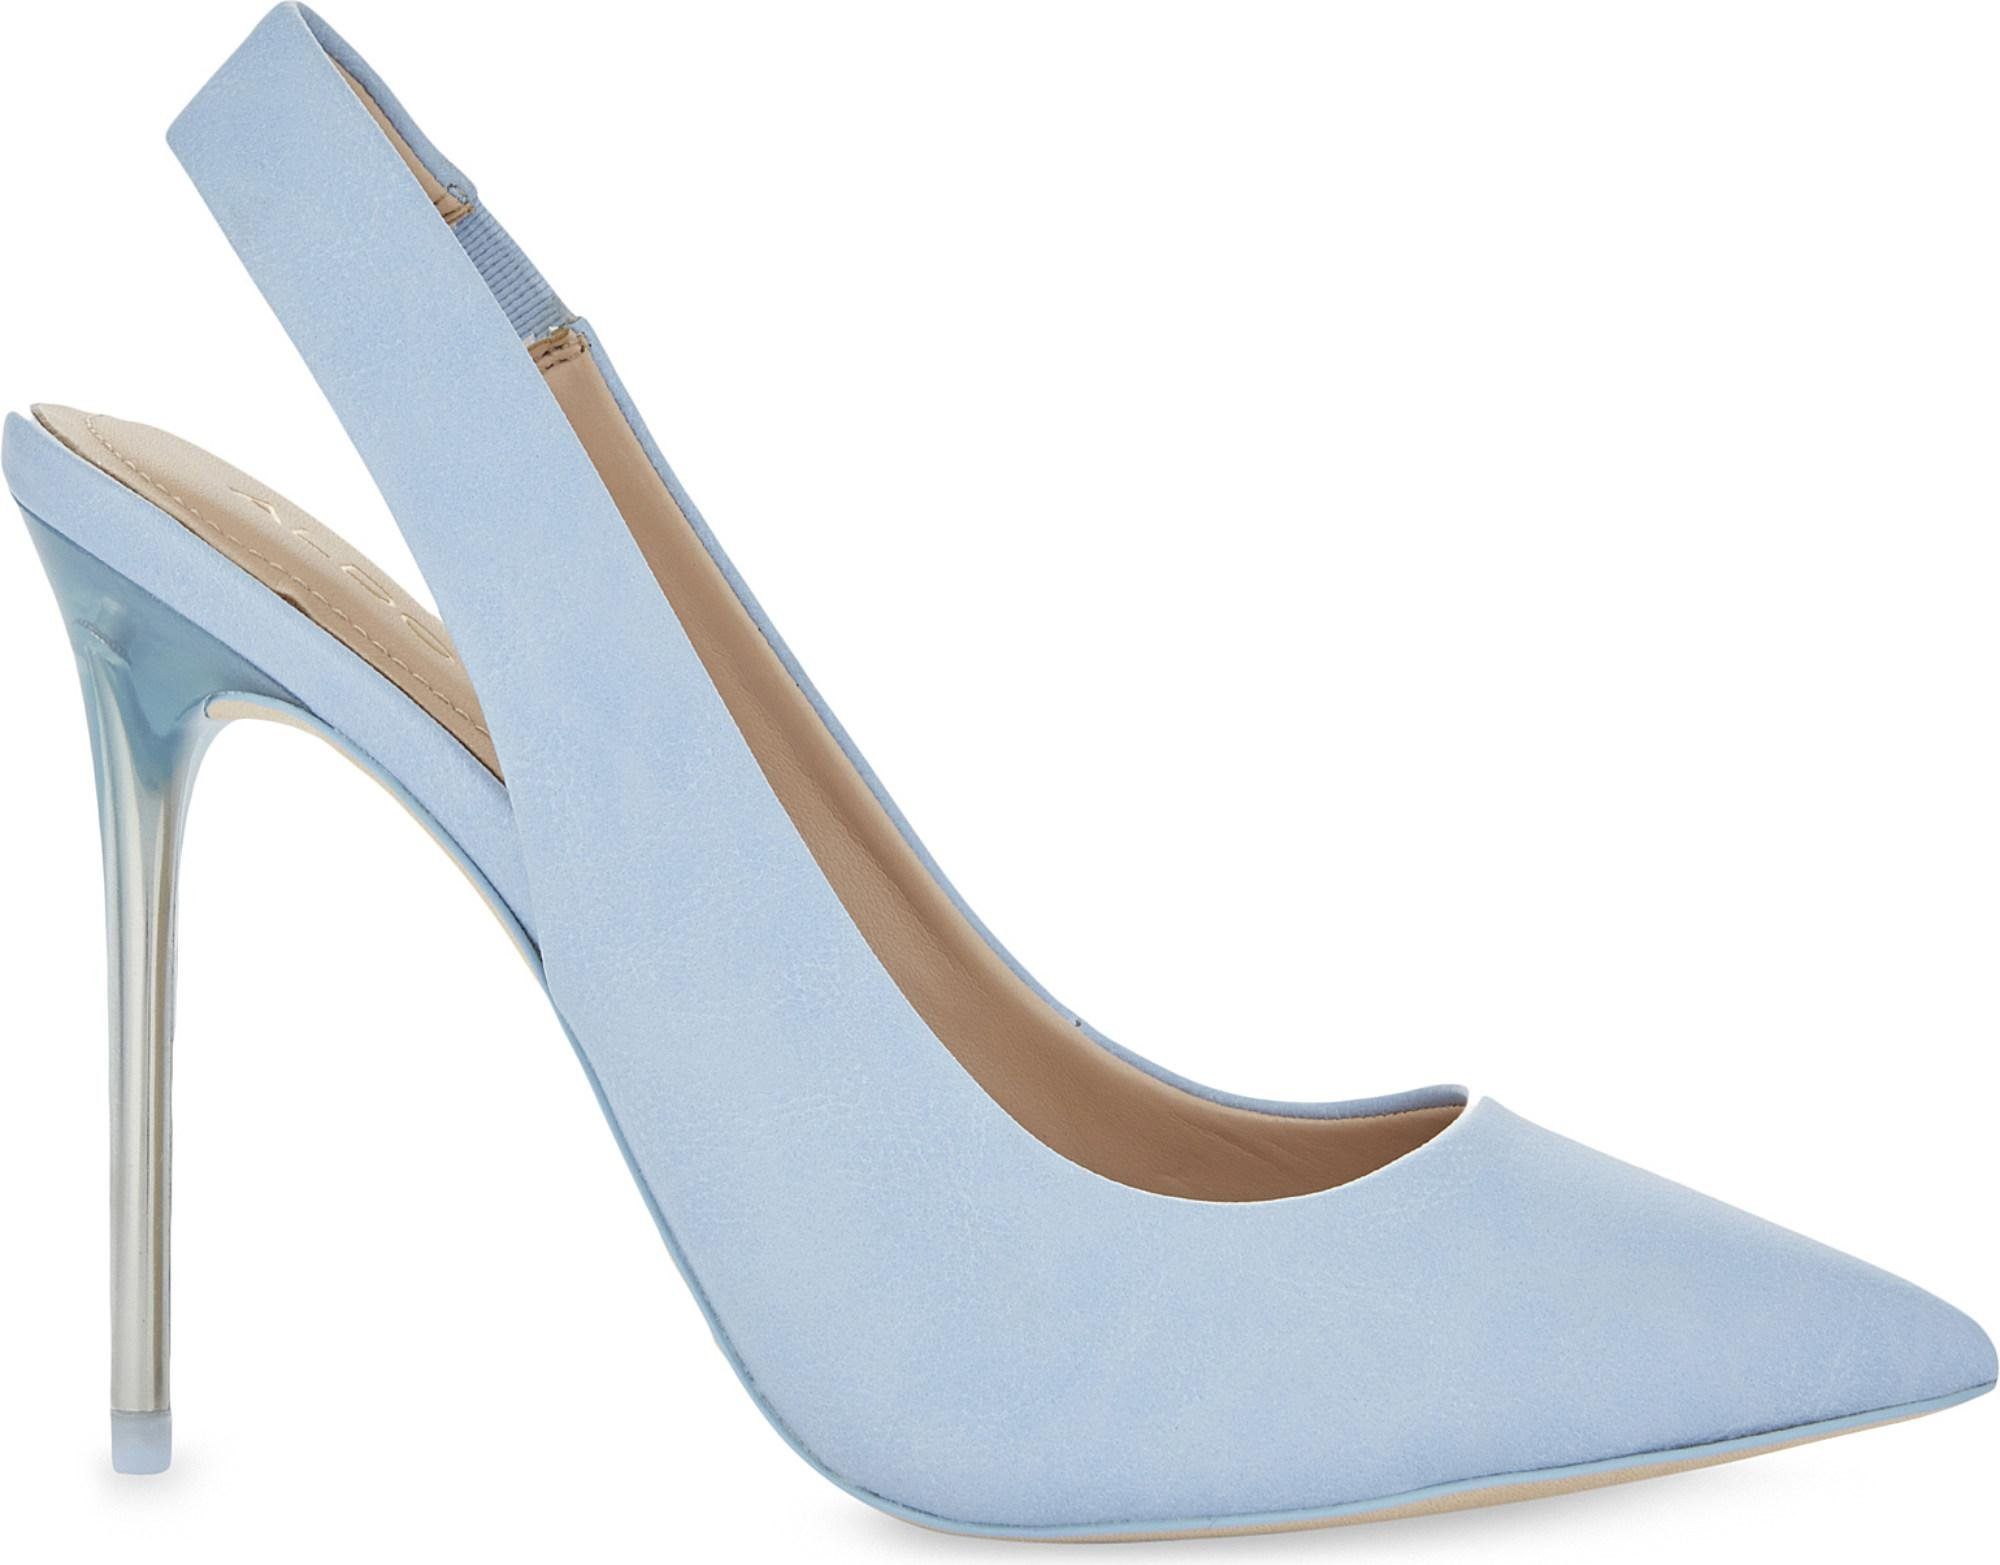 04c9605be34 Aldo Niky Slingback Courts in Blue - Lyst